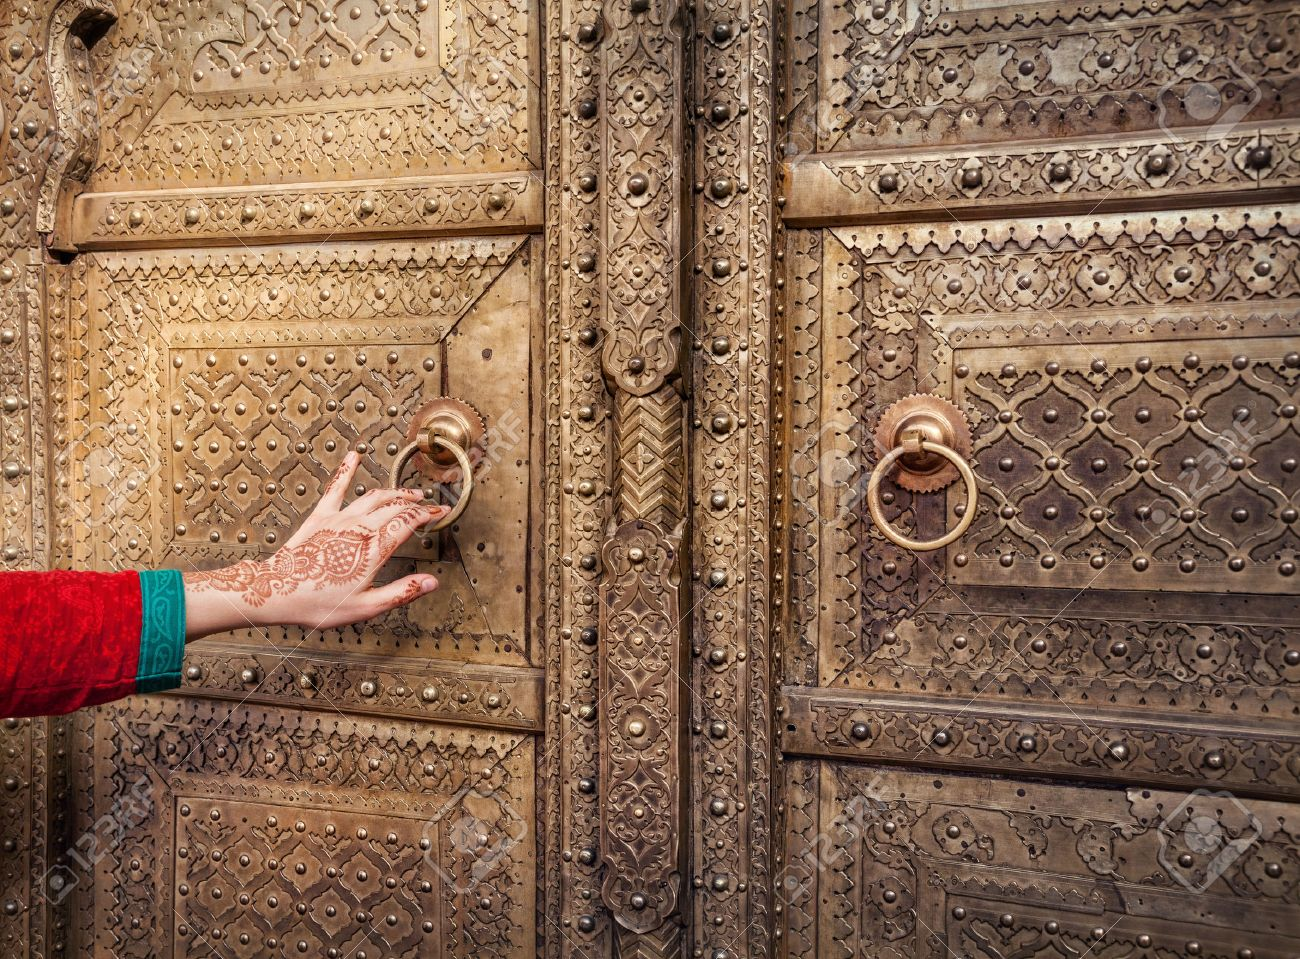 Woman hand with henna painting opening golden door in City Palace of Jaipur, Rajasthan, India Stock Photo - 40347668